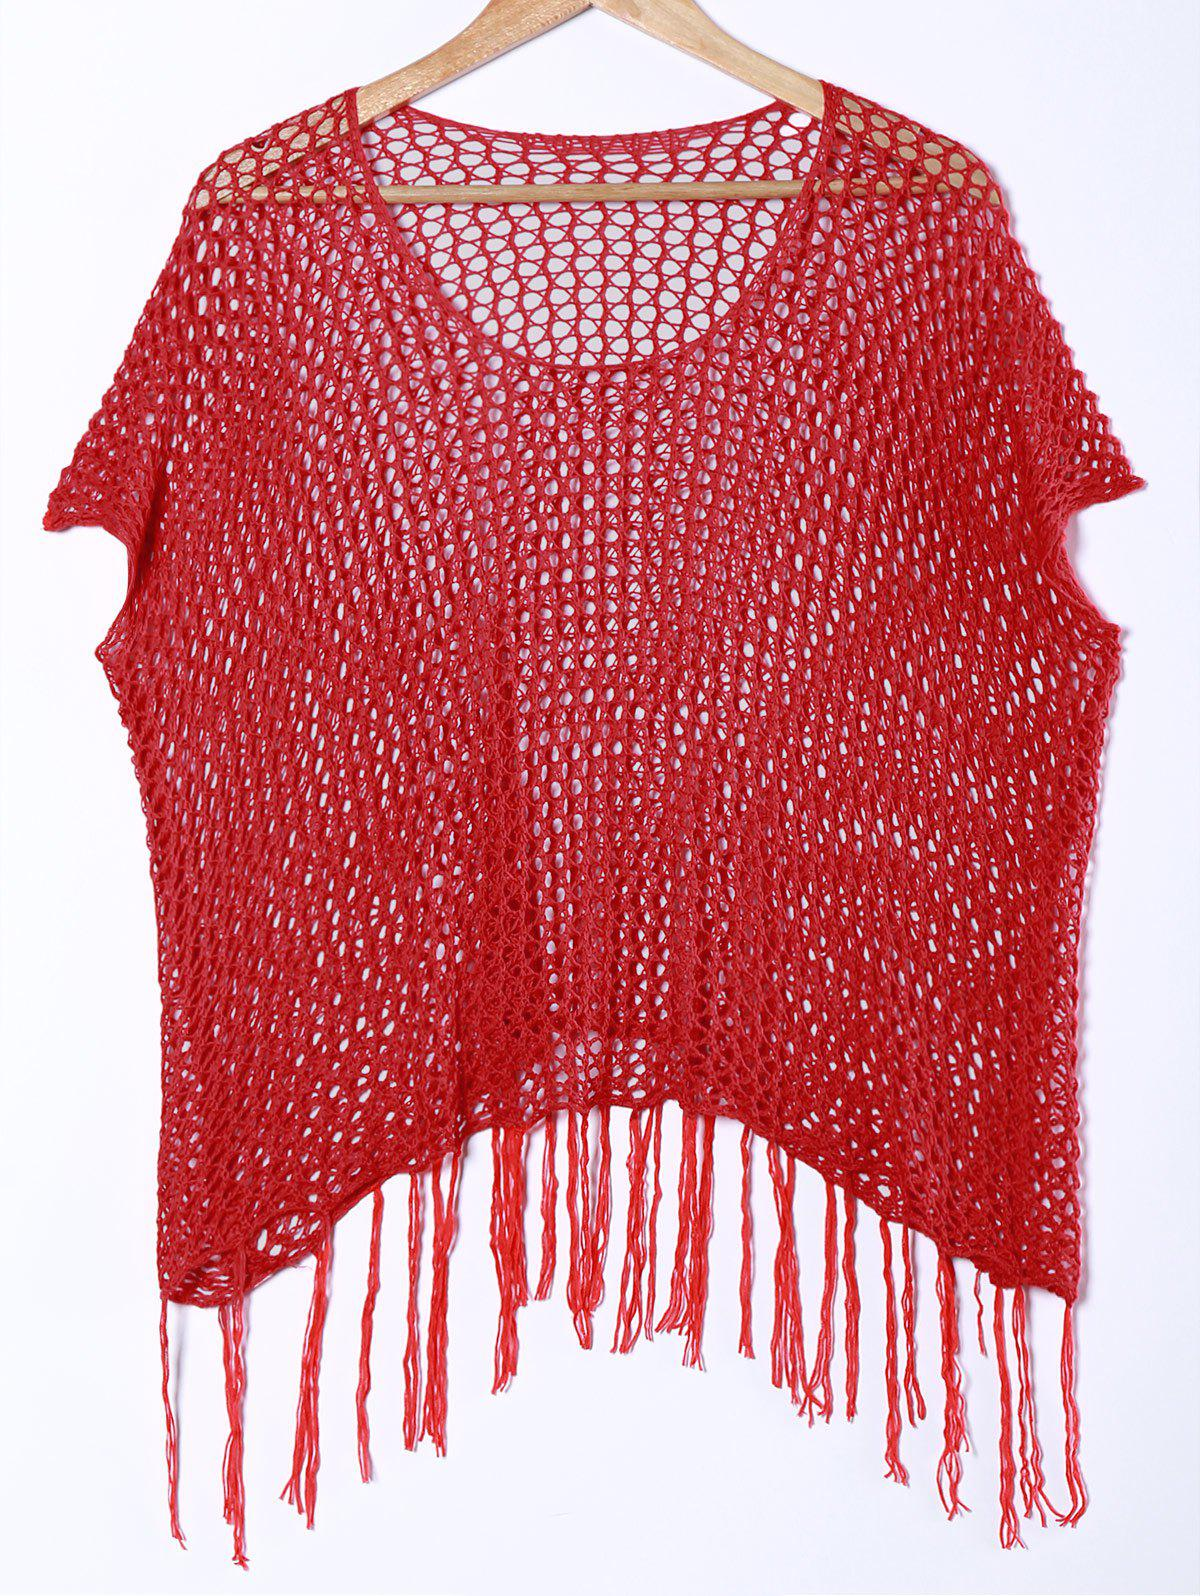 Stylish Women's Scoop Neck Short Sleeve Fringed Cover-Up - RED ONE SIZE(FIT SIZE XS TO M)